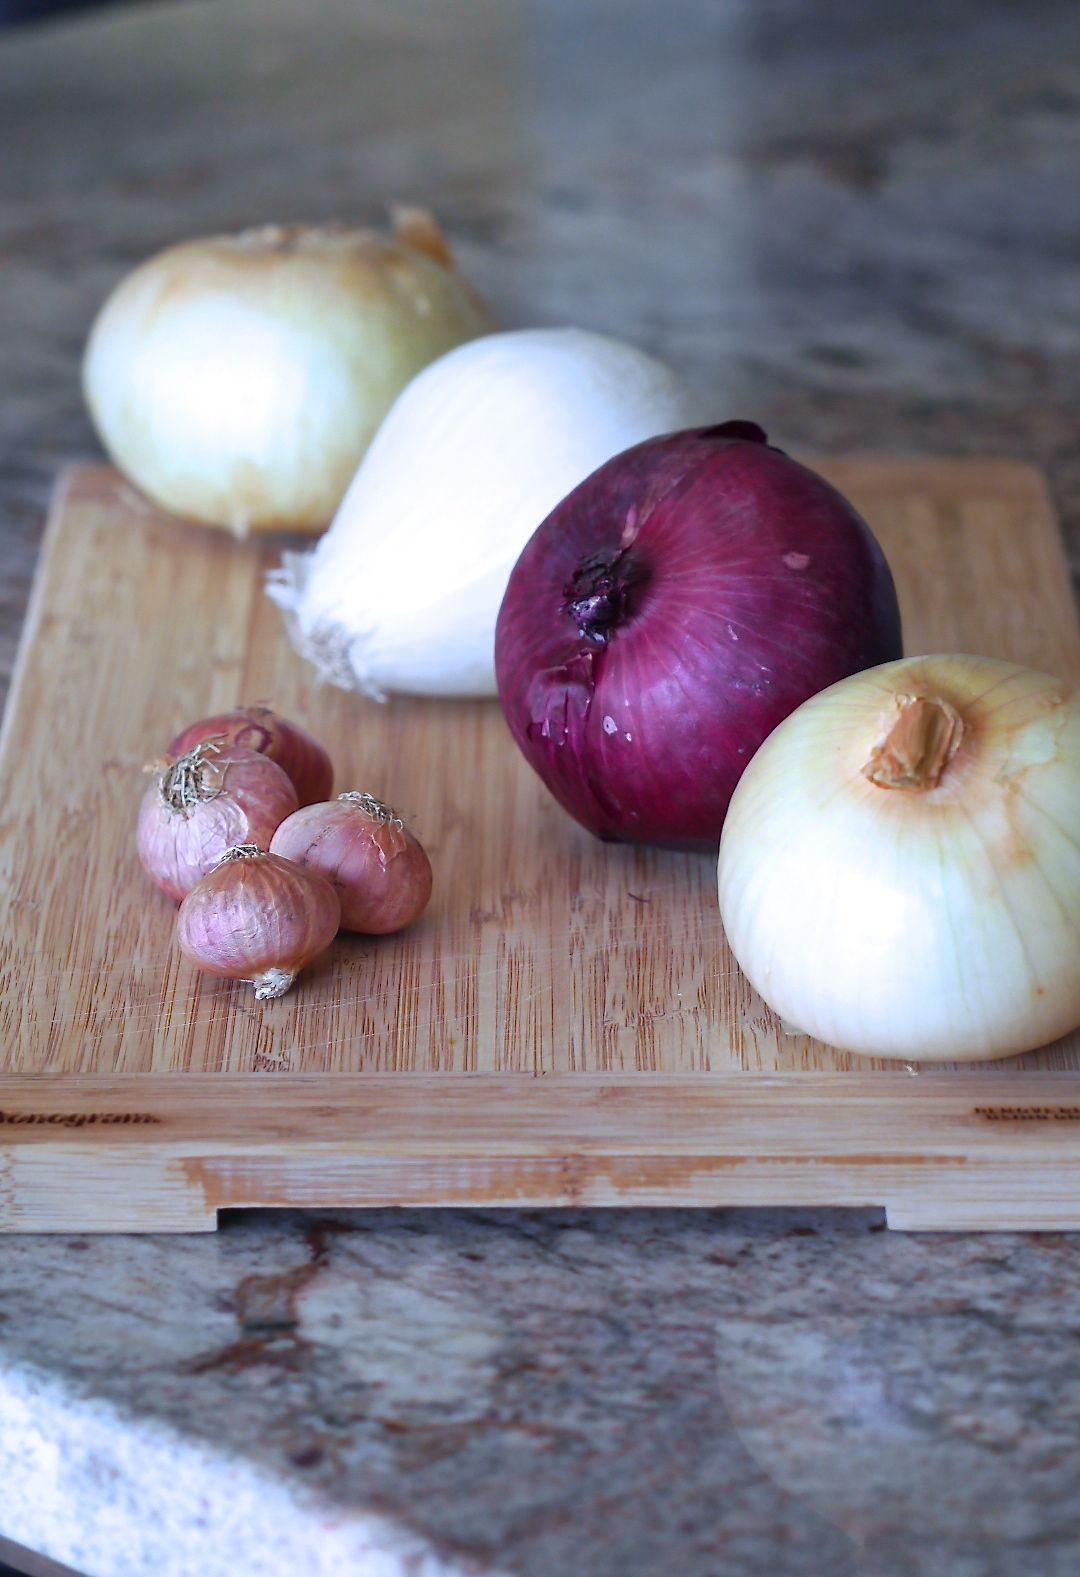 Daily diet for good health - Whether Eating Onions Raw Or Cooked They Have Many Health Benefits